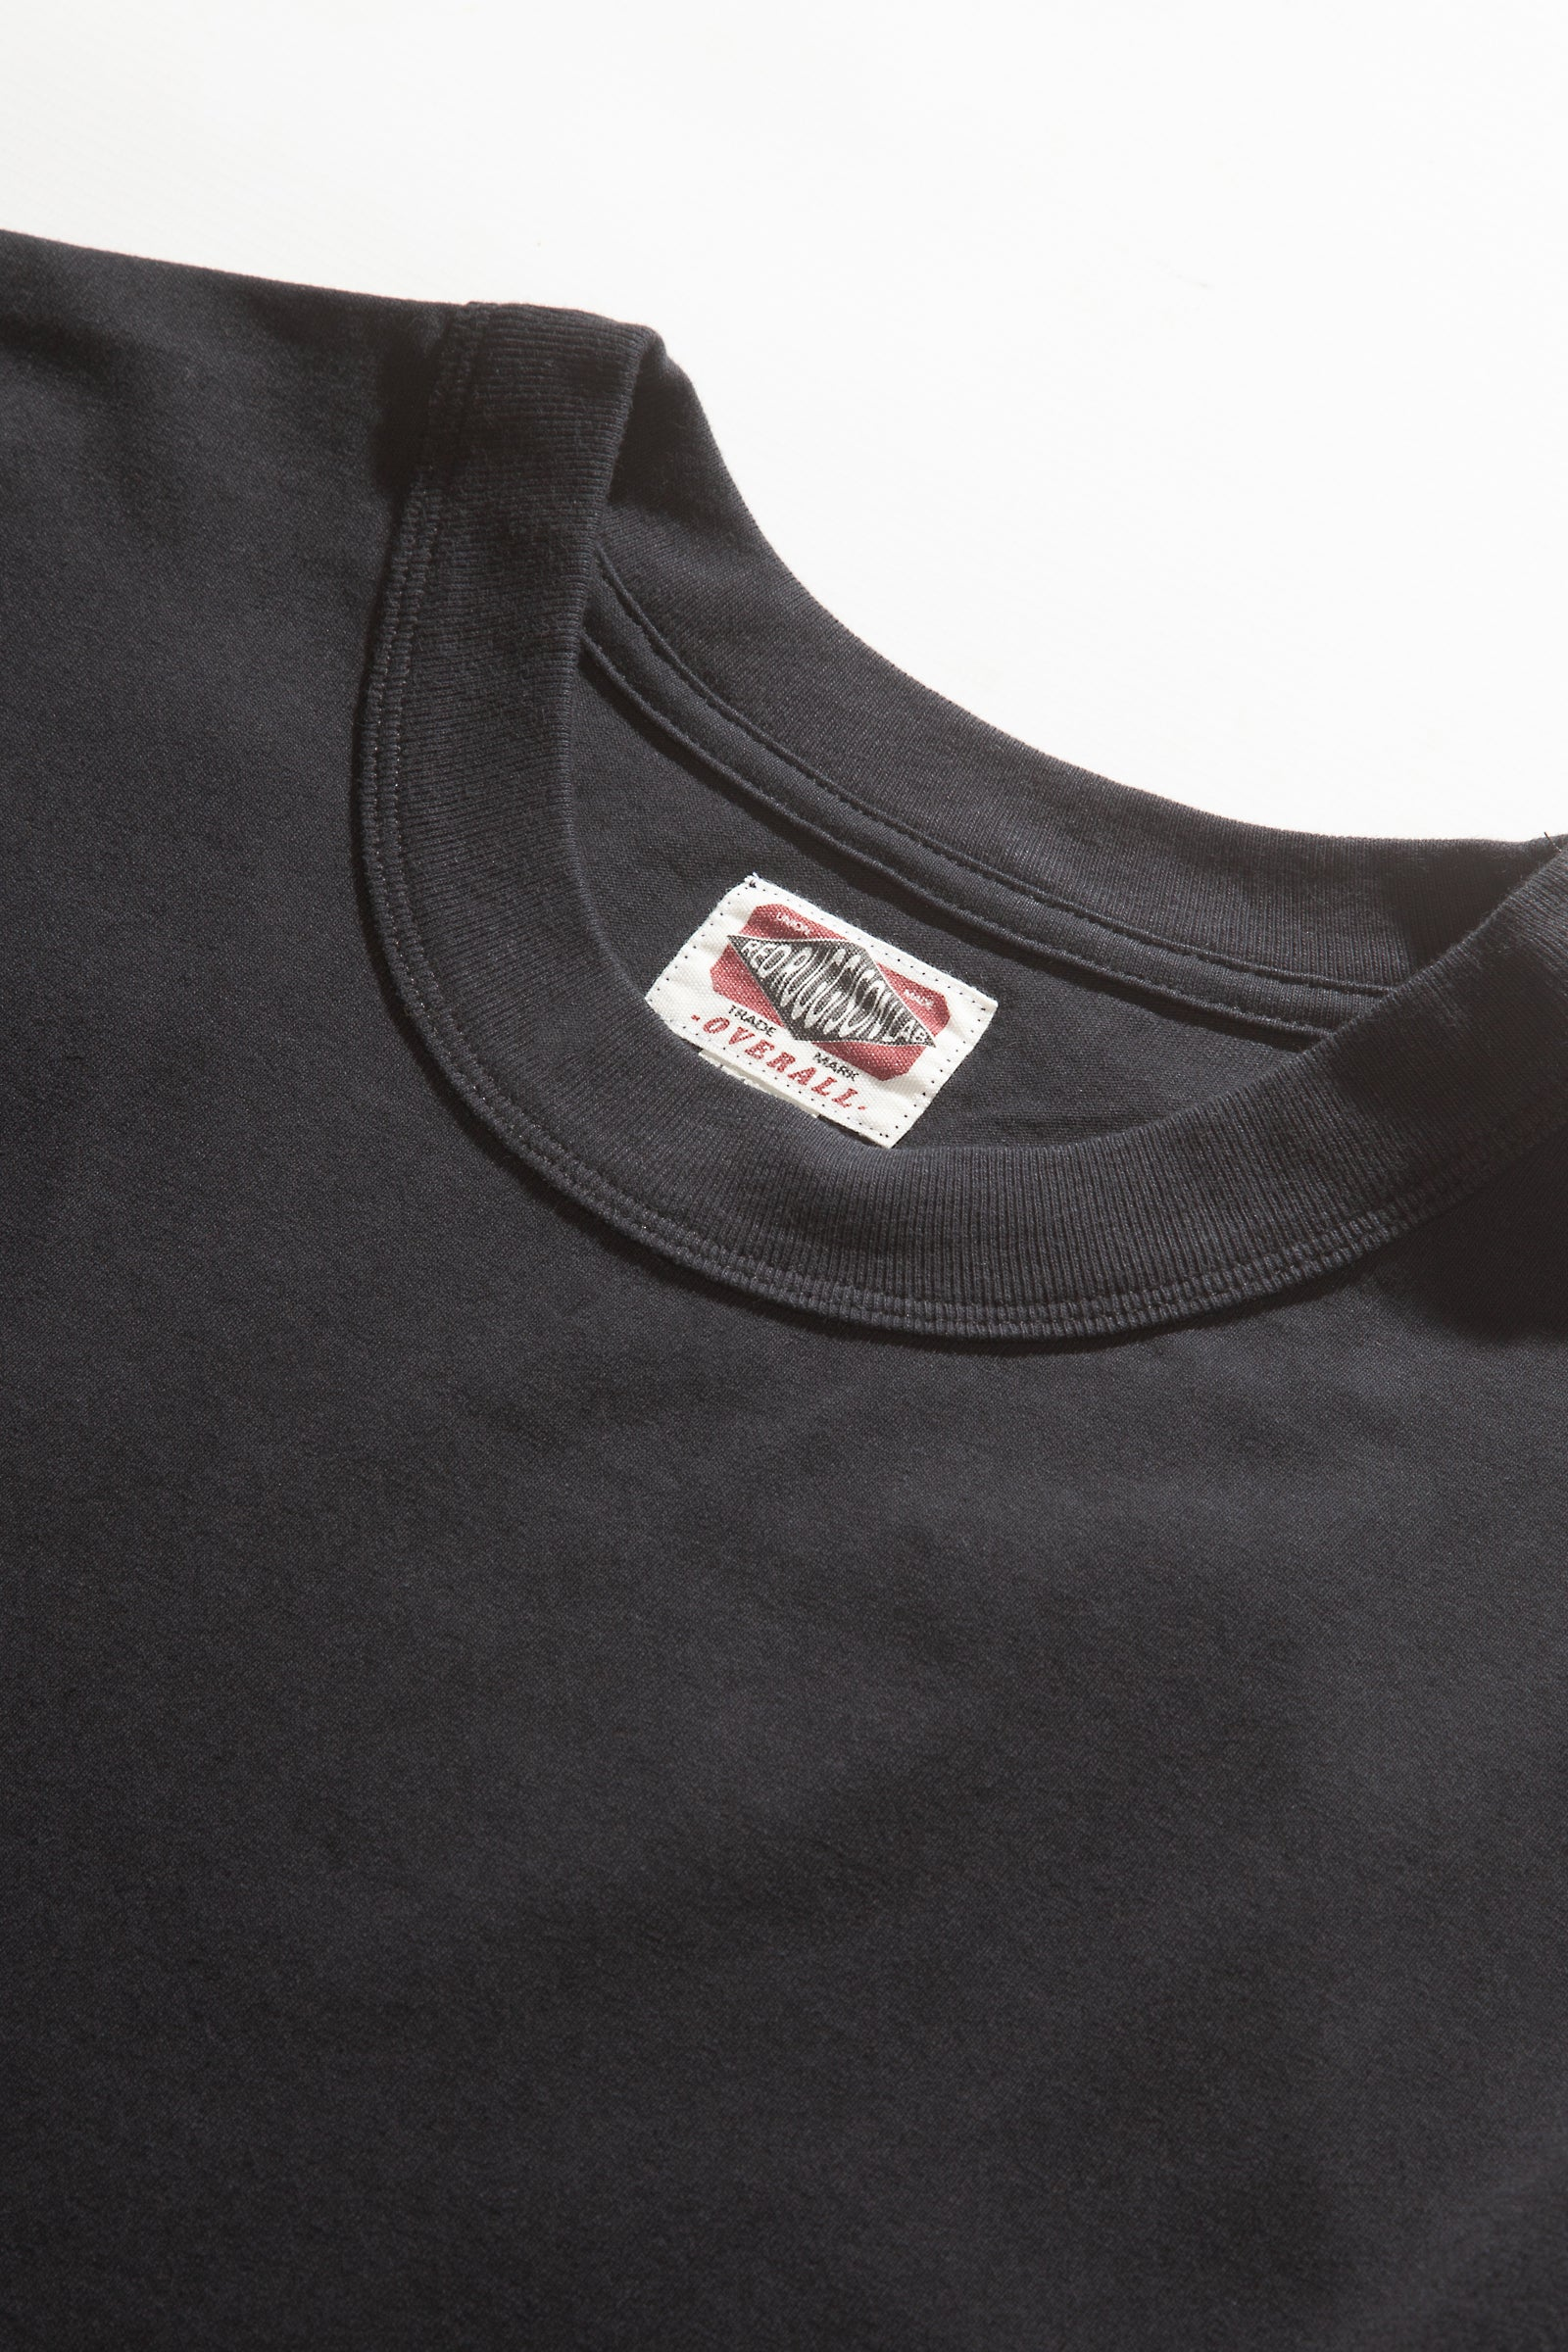 Red Ruggison - Short Sleeve T-Shirt - Black